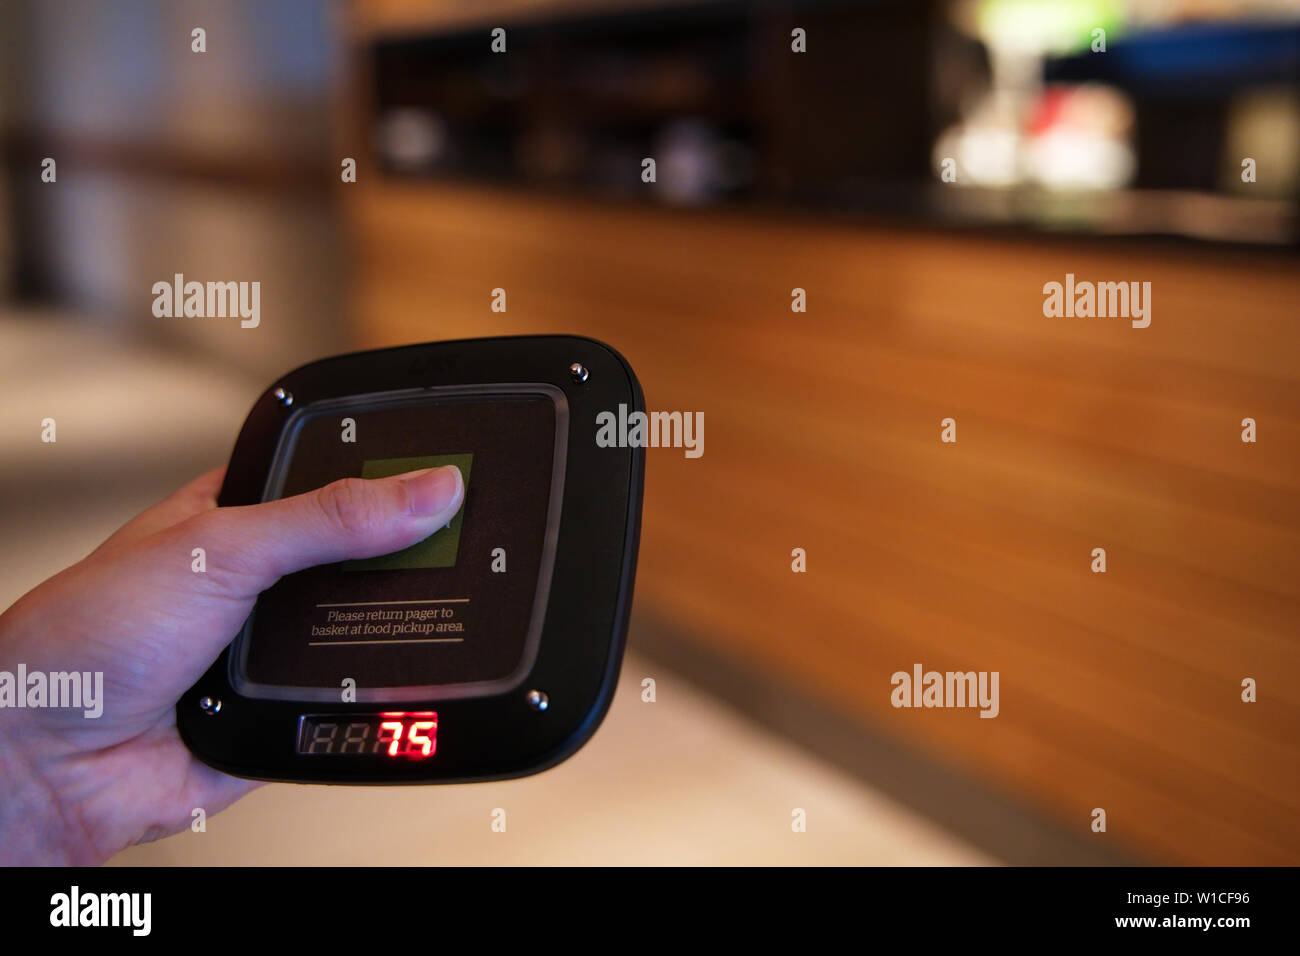 Pager Stock Photos & Pager Stock Images - Alamy